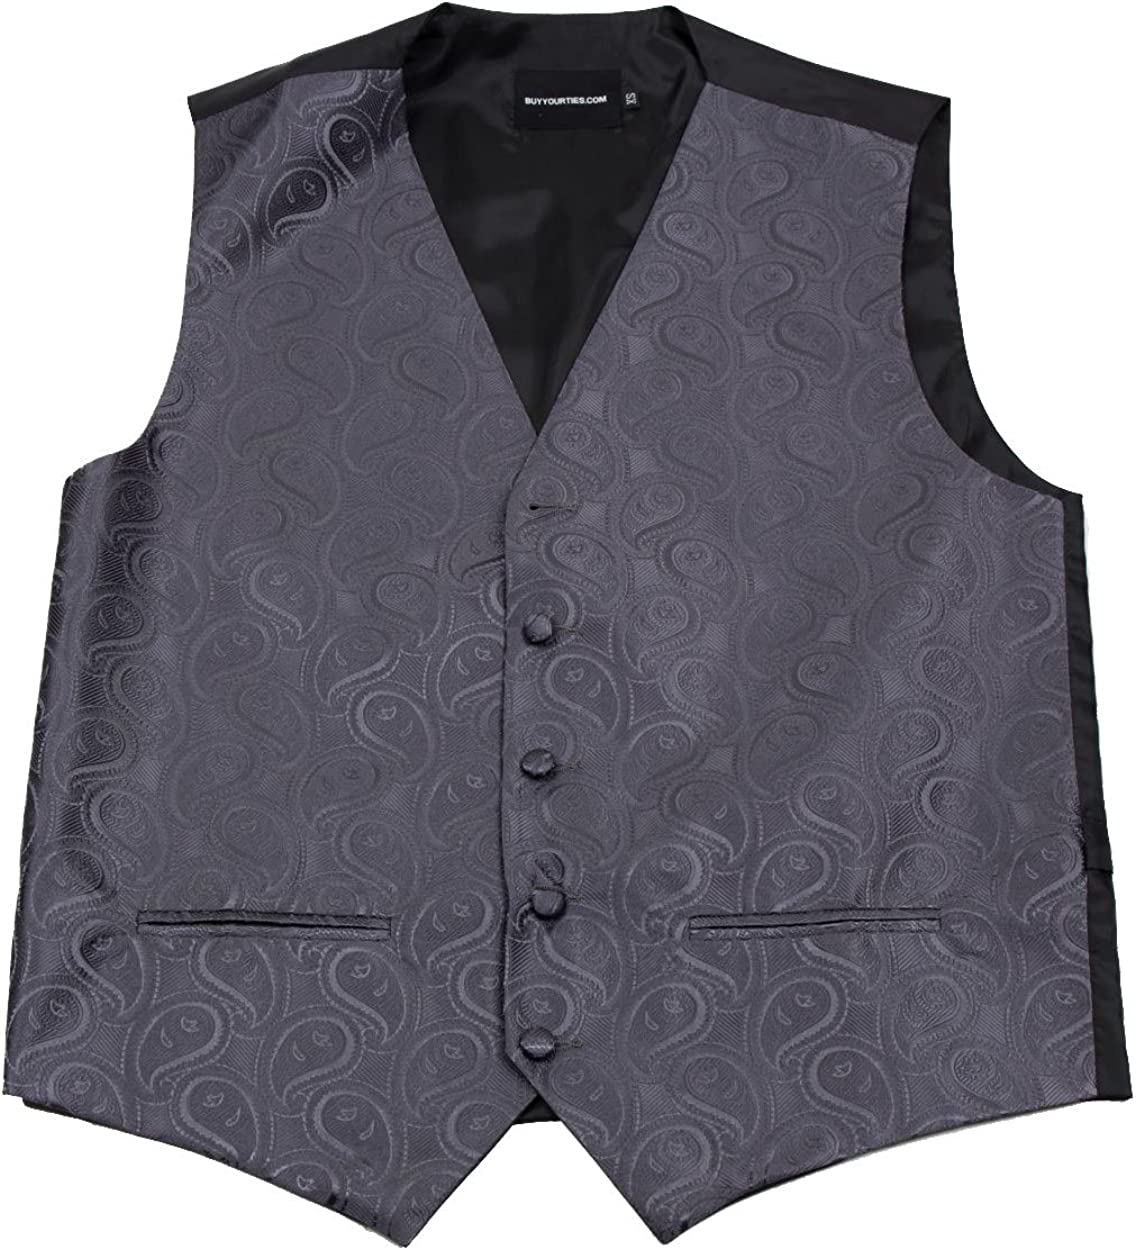 Buy Your Ties Mens Paisley Formal Vest for Tuxedo and Suit